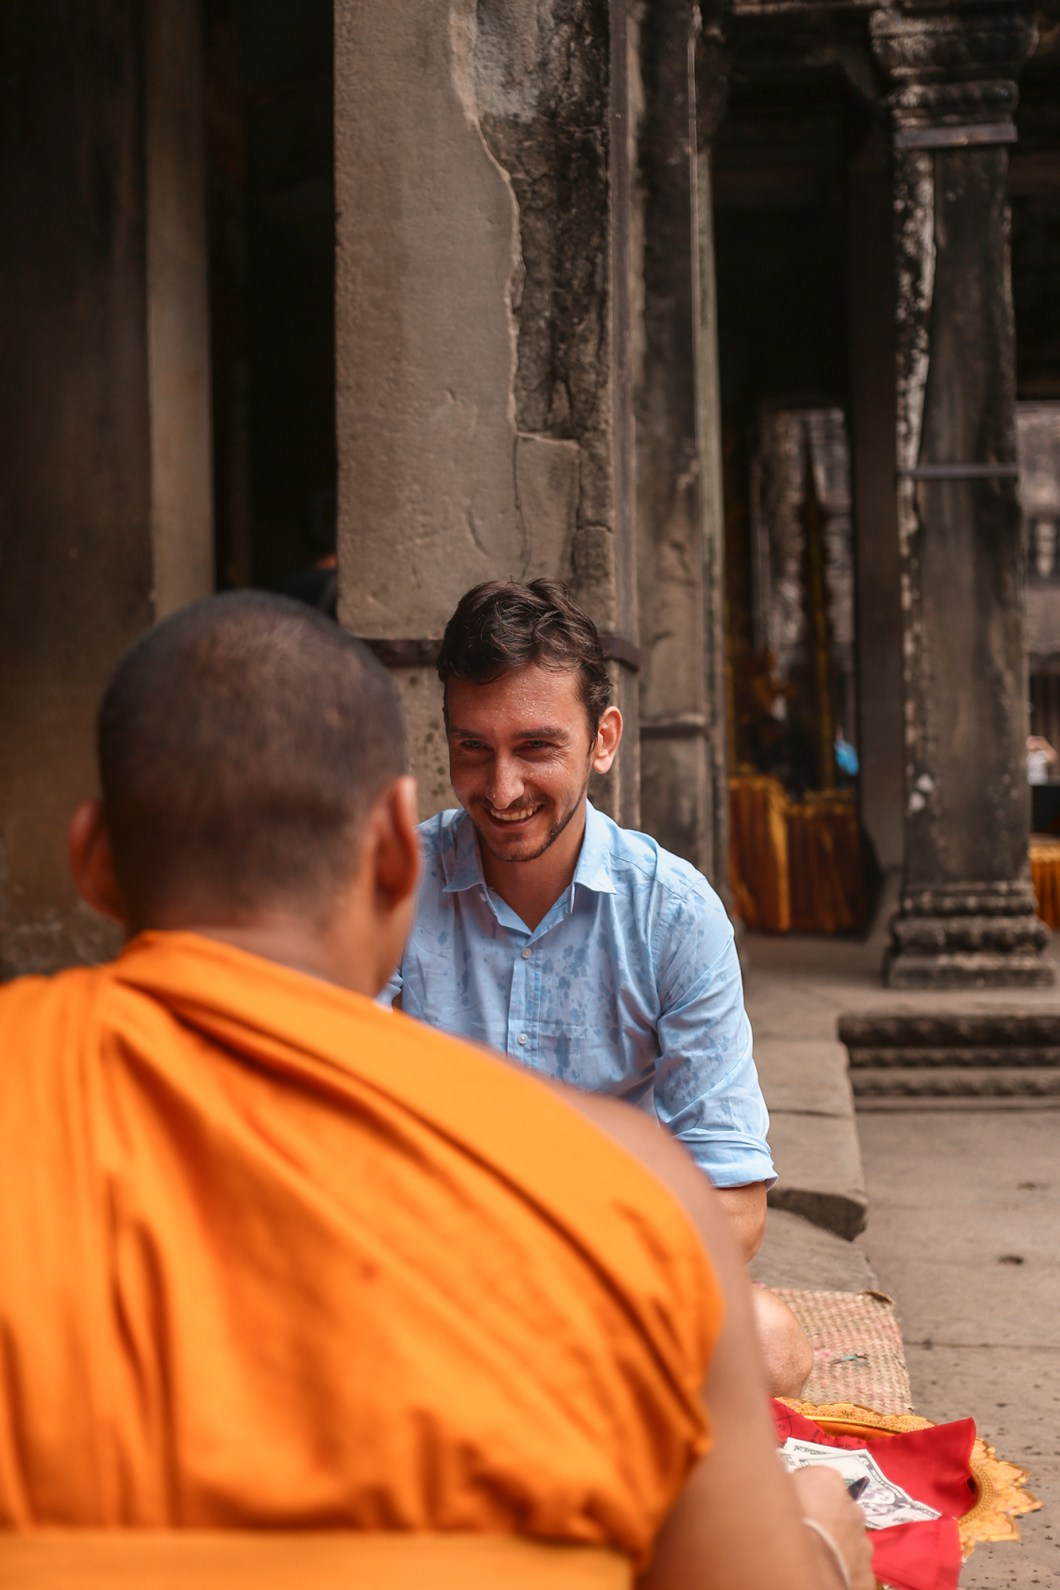 Angkor Wat Cambodia | How Far From Home